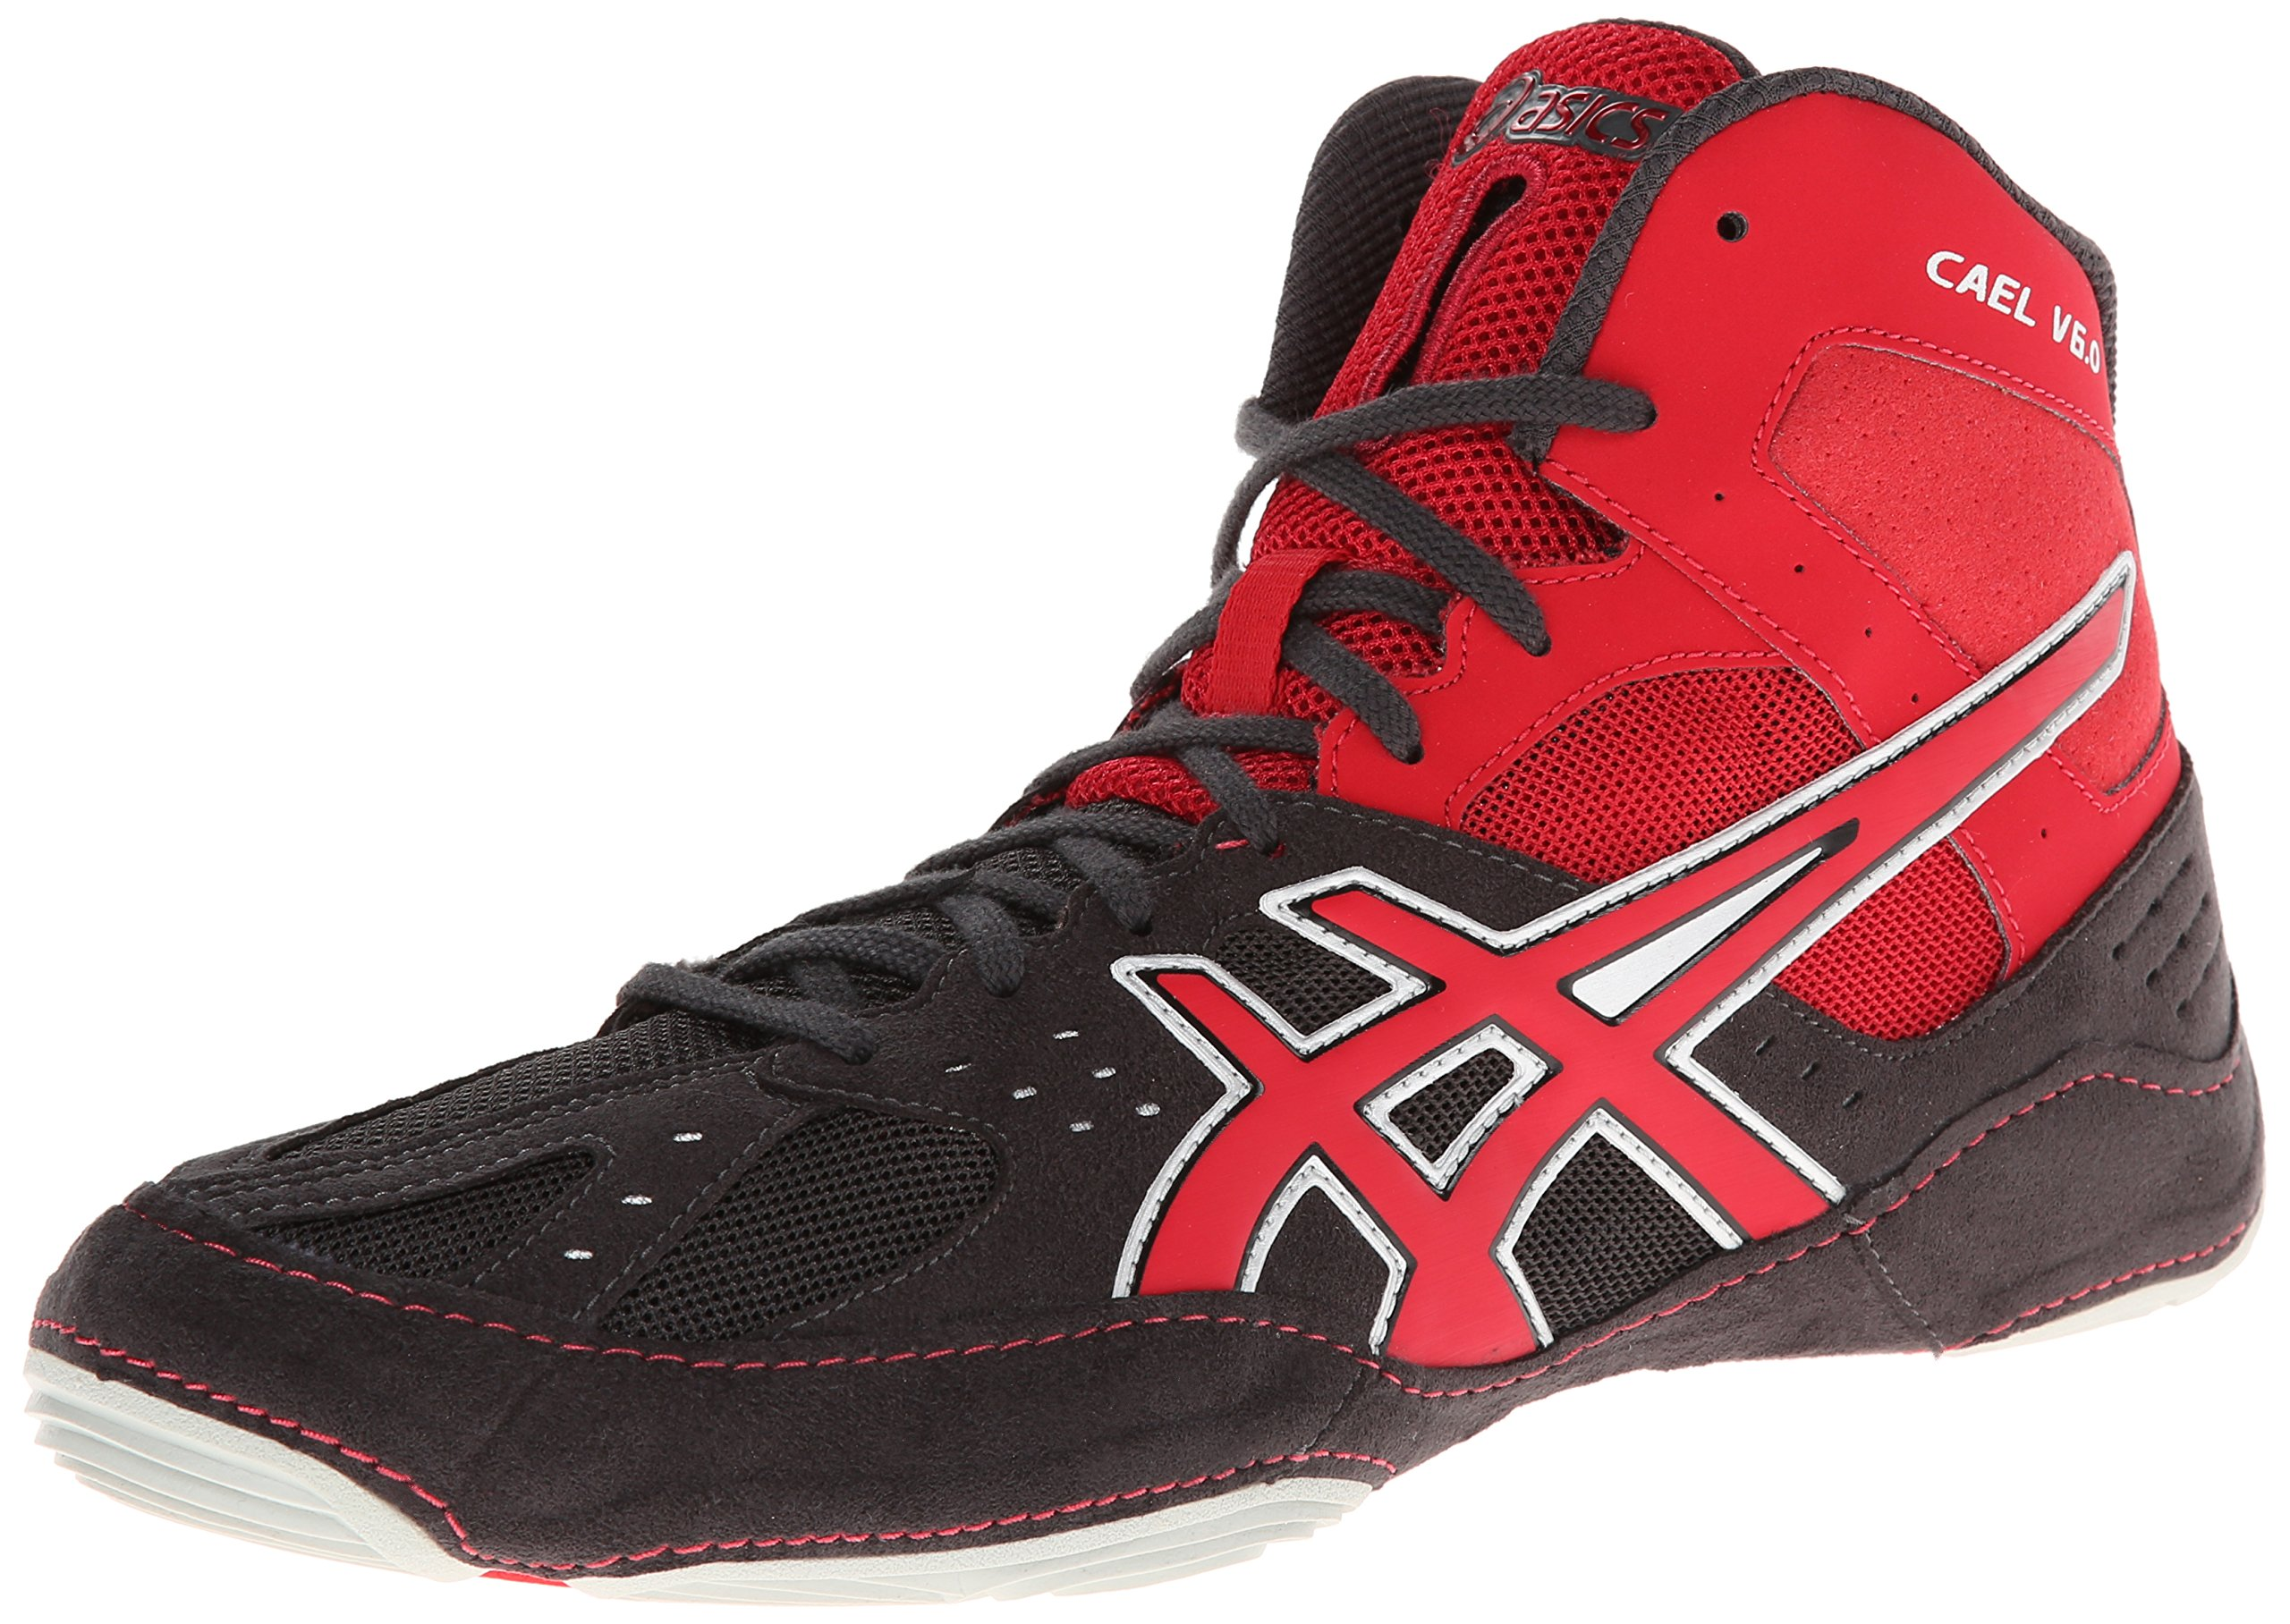 Asics Men's Cael V6.0 Wrestling Shoe,Charcoal/Fire Red/Silver,10 M US by ASICS